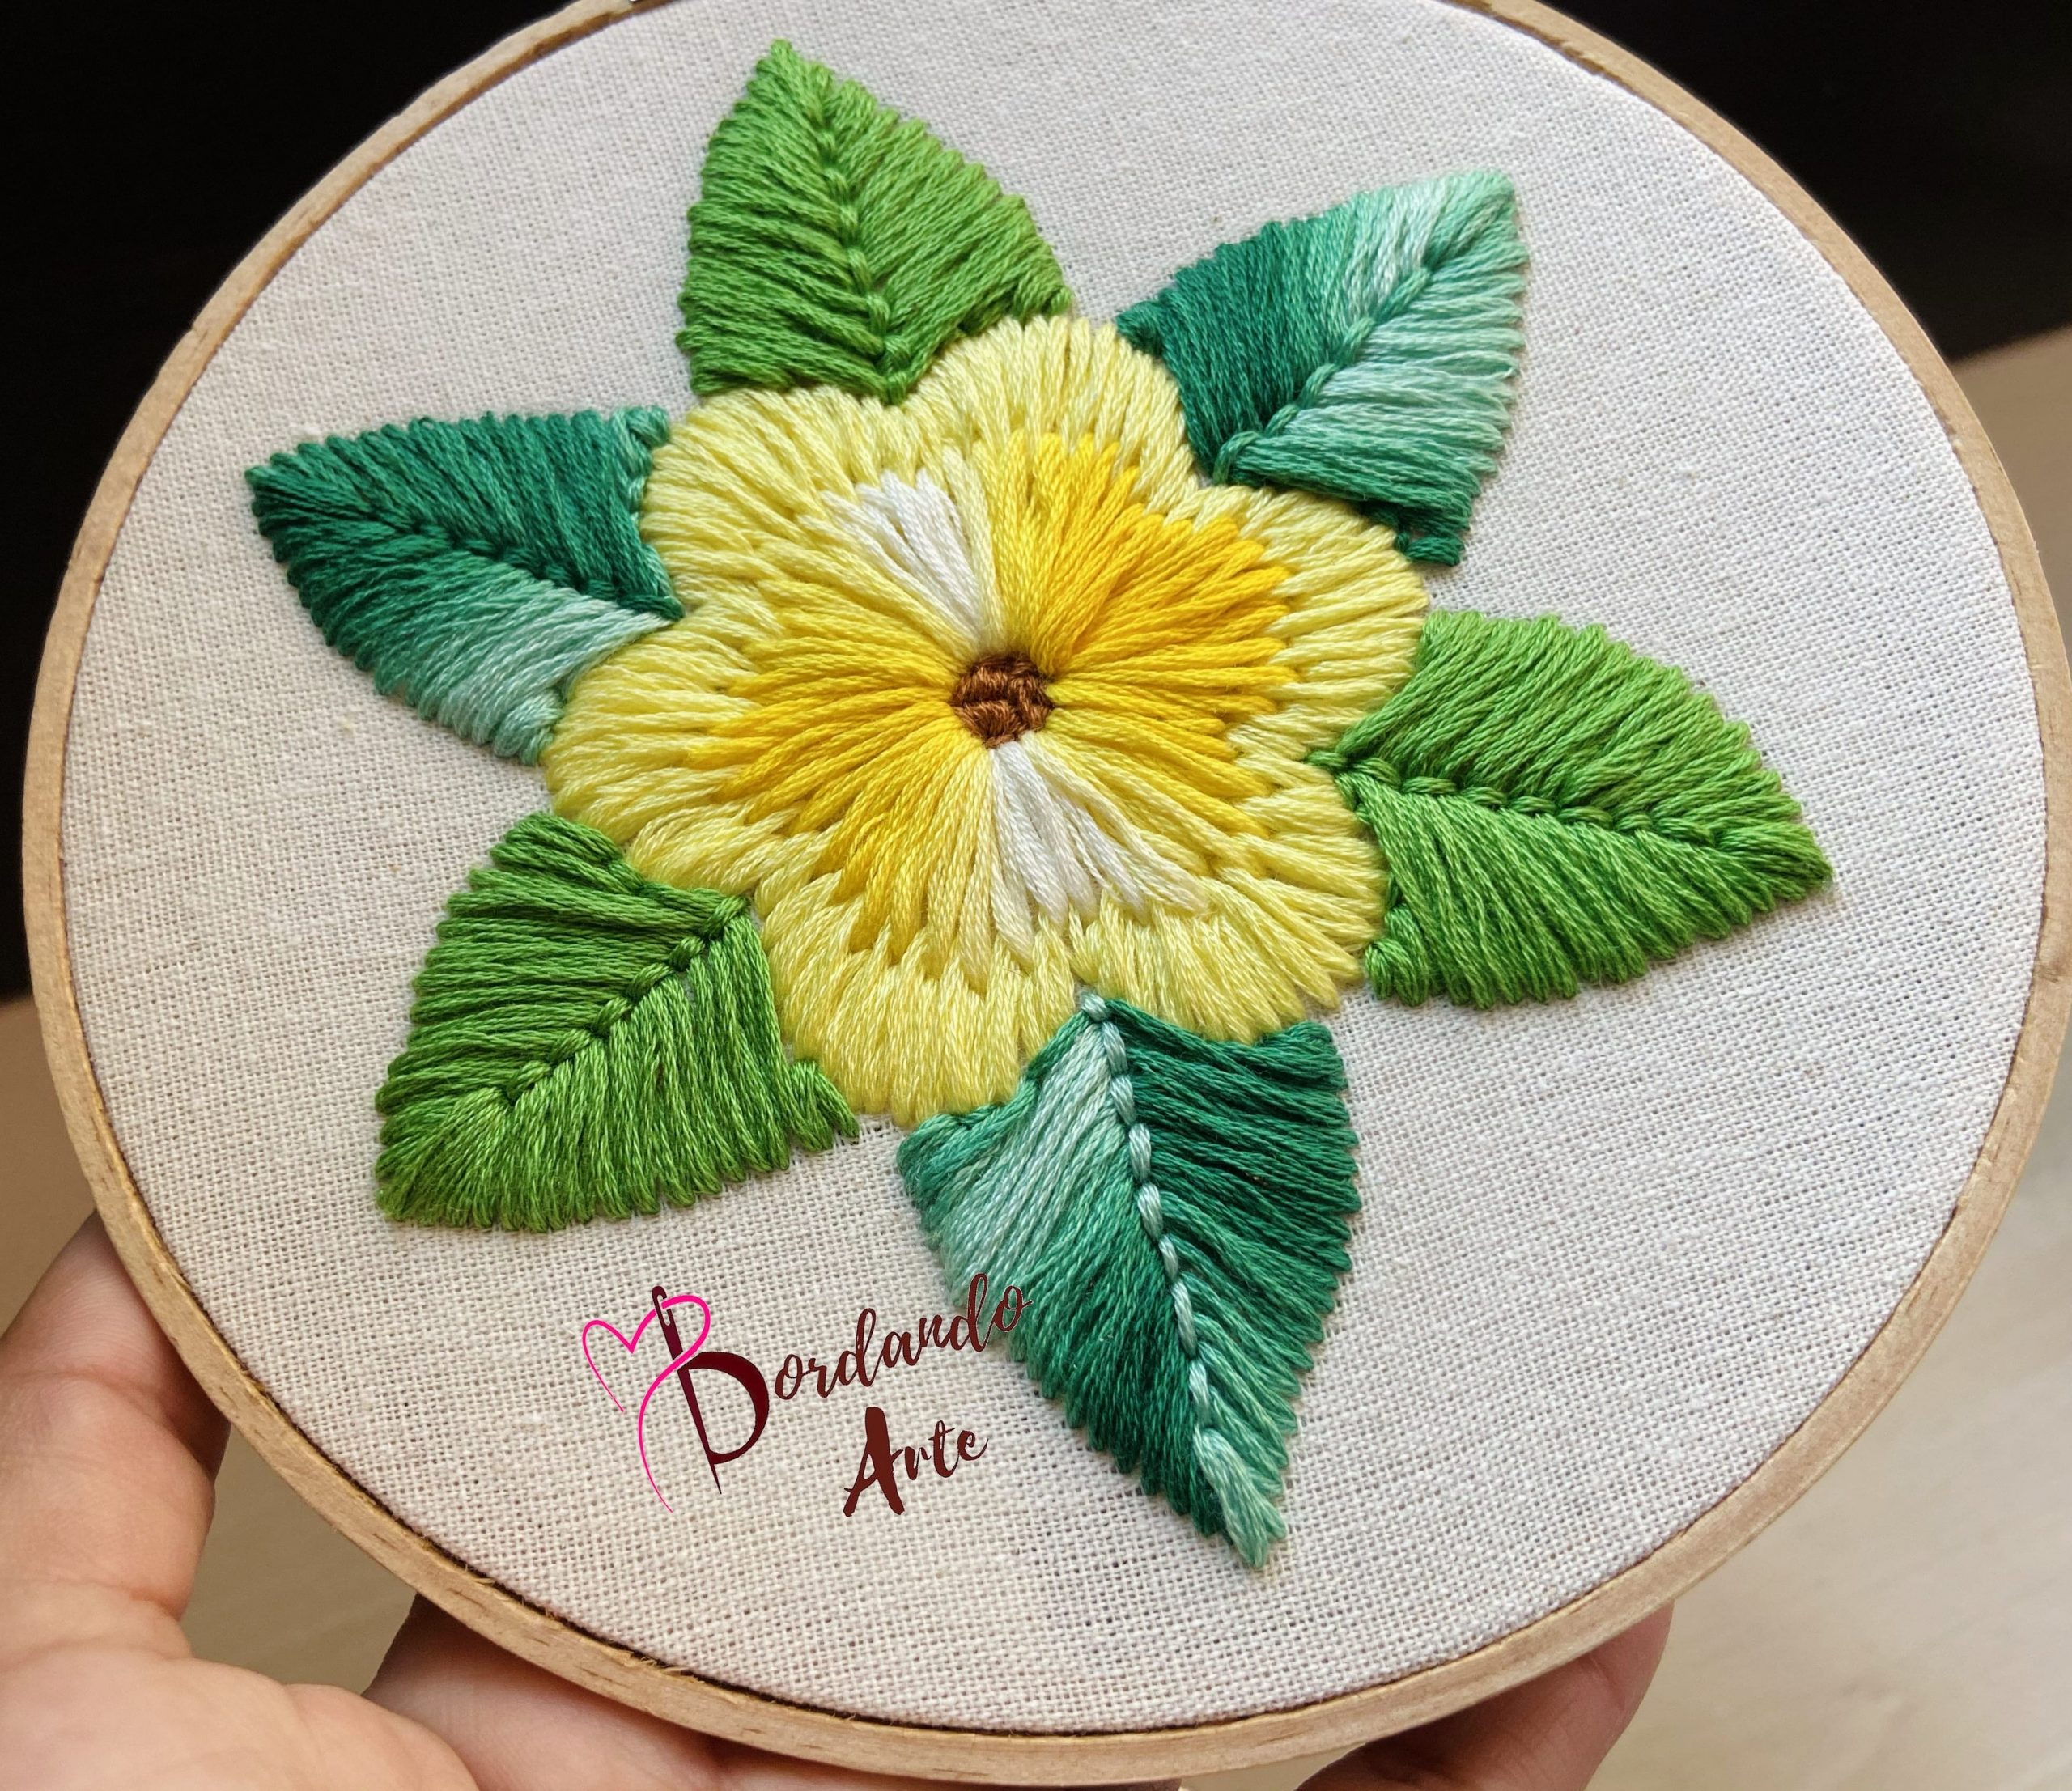 Bordar flores con aguja mágica | Embroidery flowers punch needle - Bordando  Arte